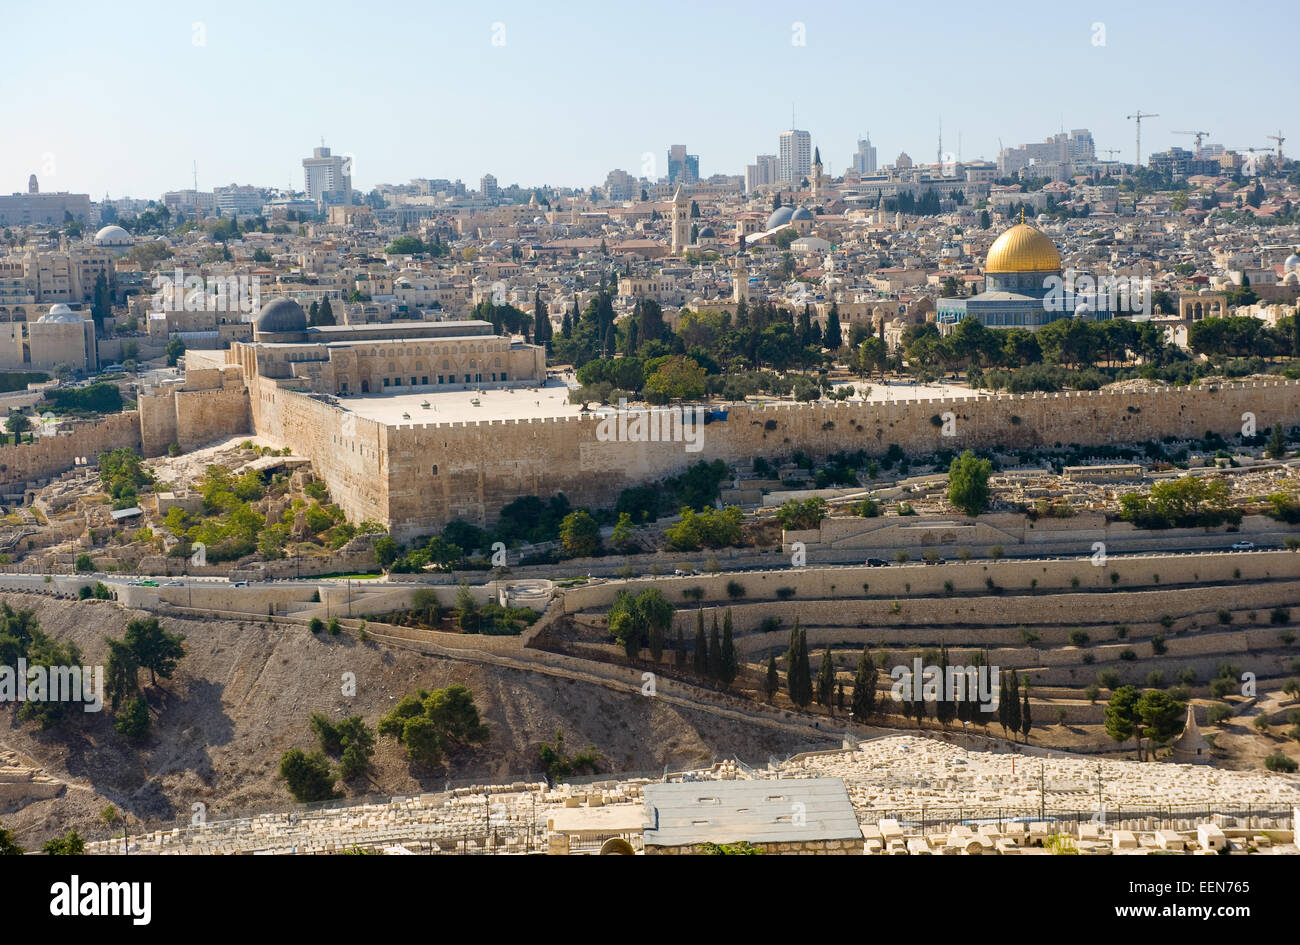 The temple mount with the al-aqsa mosque and the dome of the rock seen from the mount of olives - Stock Image